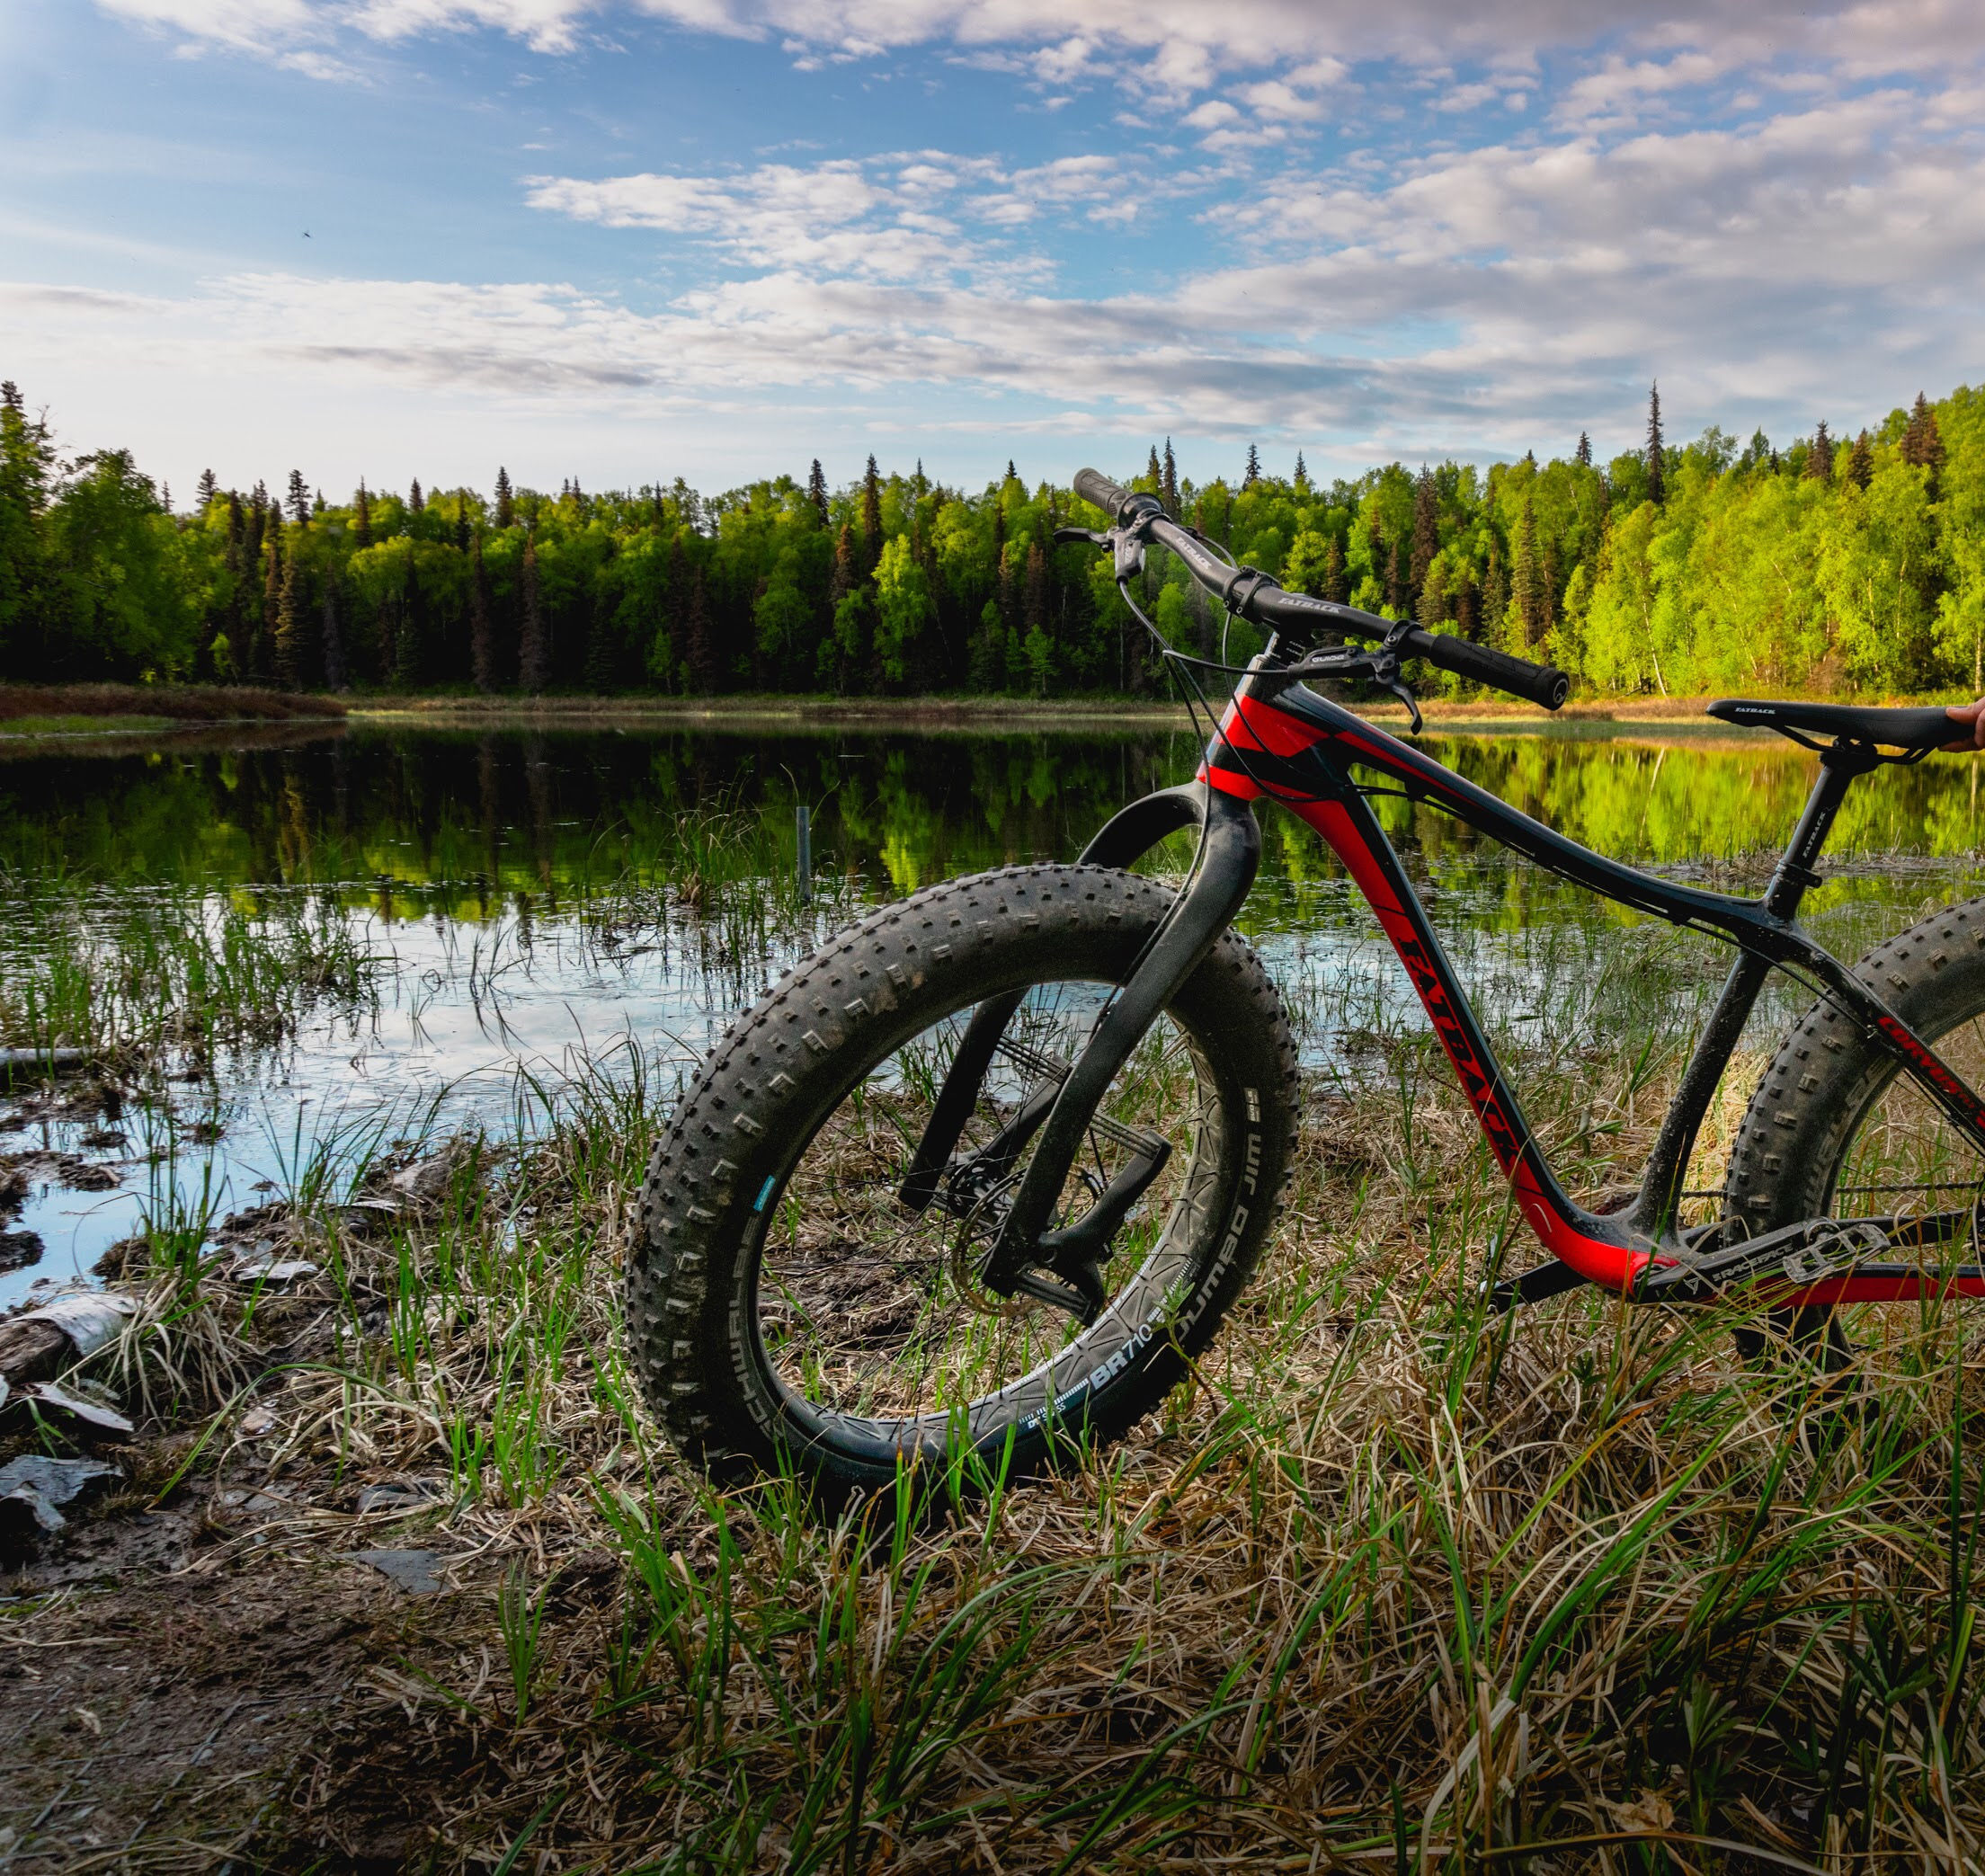 Our 2018 Fat Bike of the Year - The Fatback Corvus FLT at the Talkeetna lakes trail.